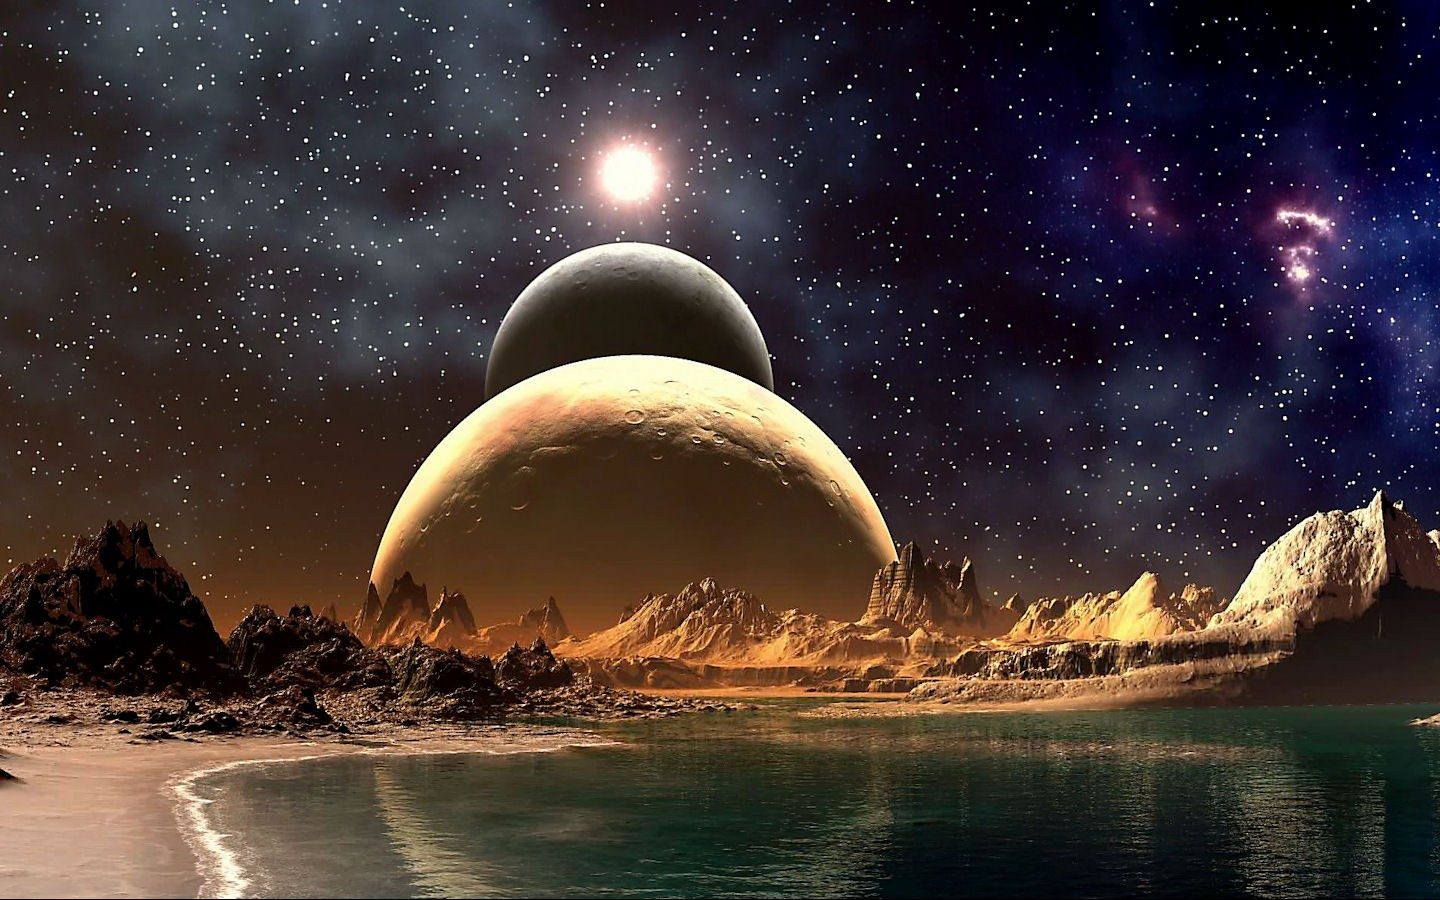 World Wallpaper Sci Fi Wallpaper: Another World Wallpaper And Background Image